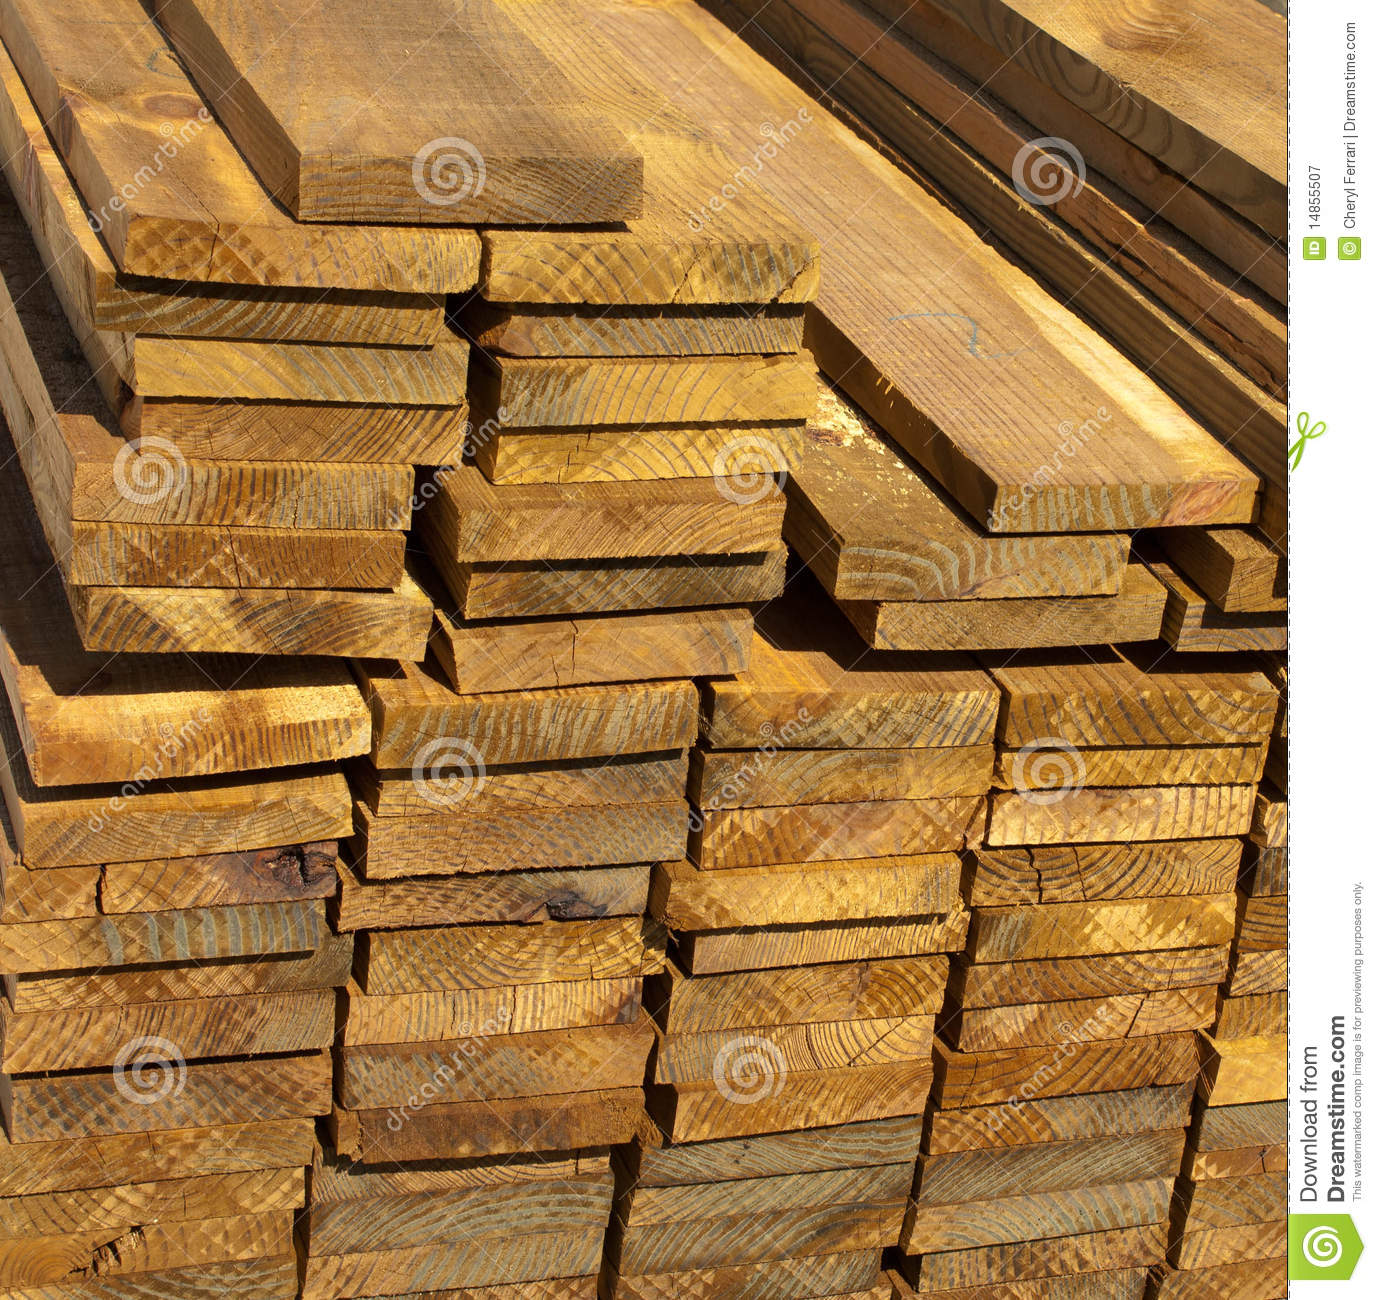 Wood Lumber Planks for Construction